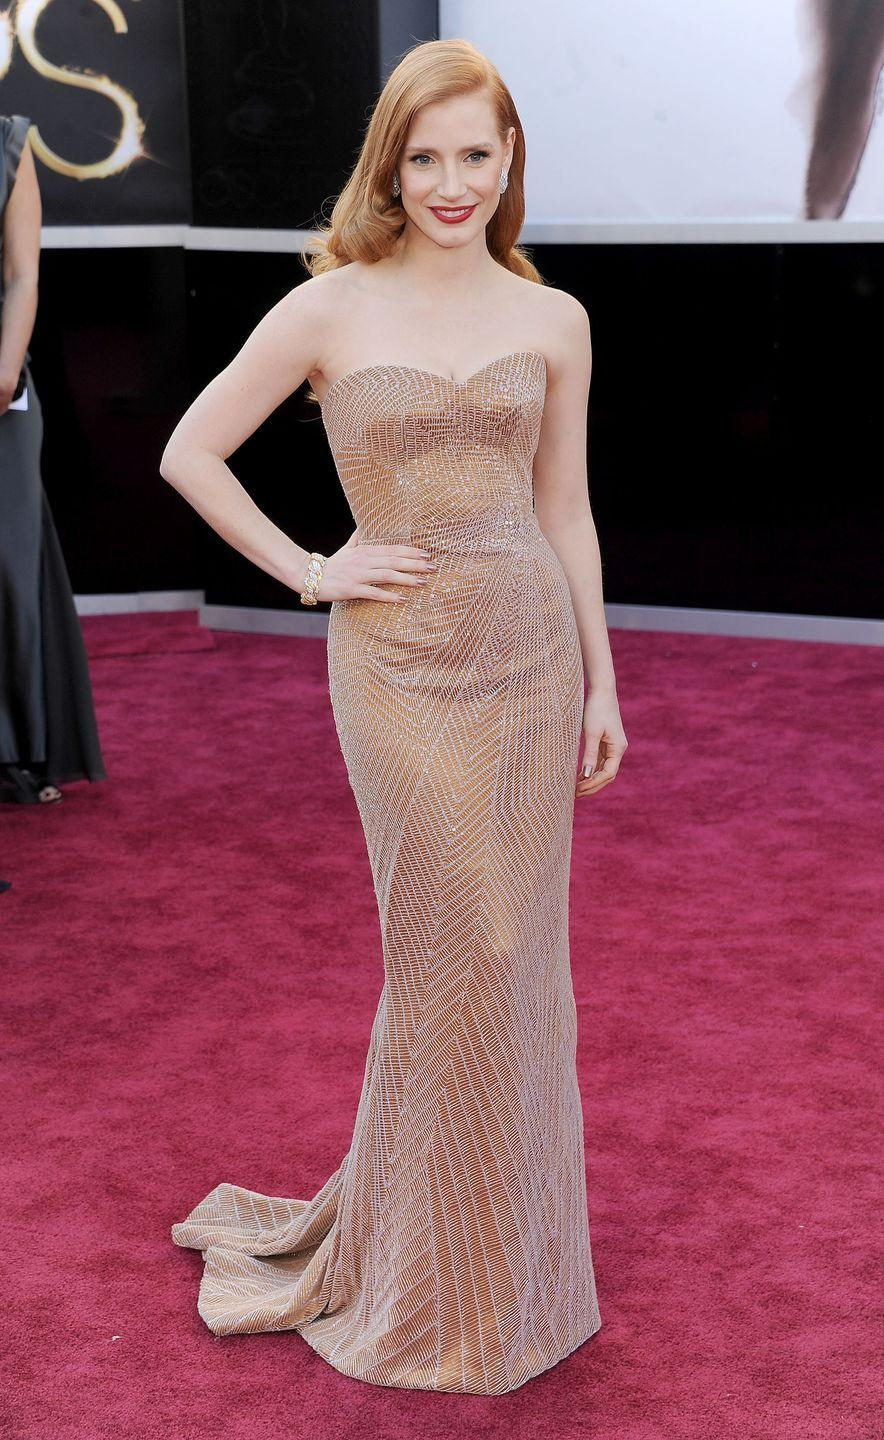 <p>Jessica Chastain channeled Old Hollywood in this embellished Armani Prive gown with sweetheart neckline and soft waves. </p>